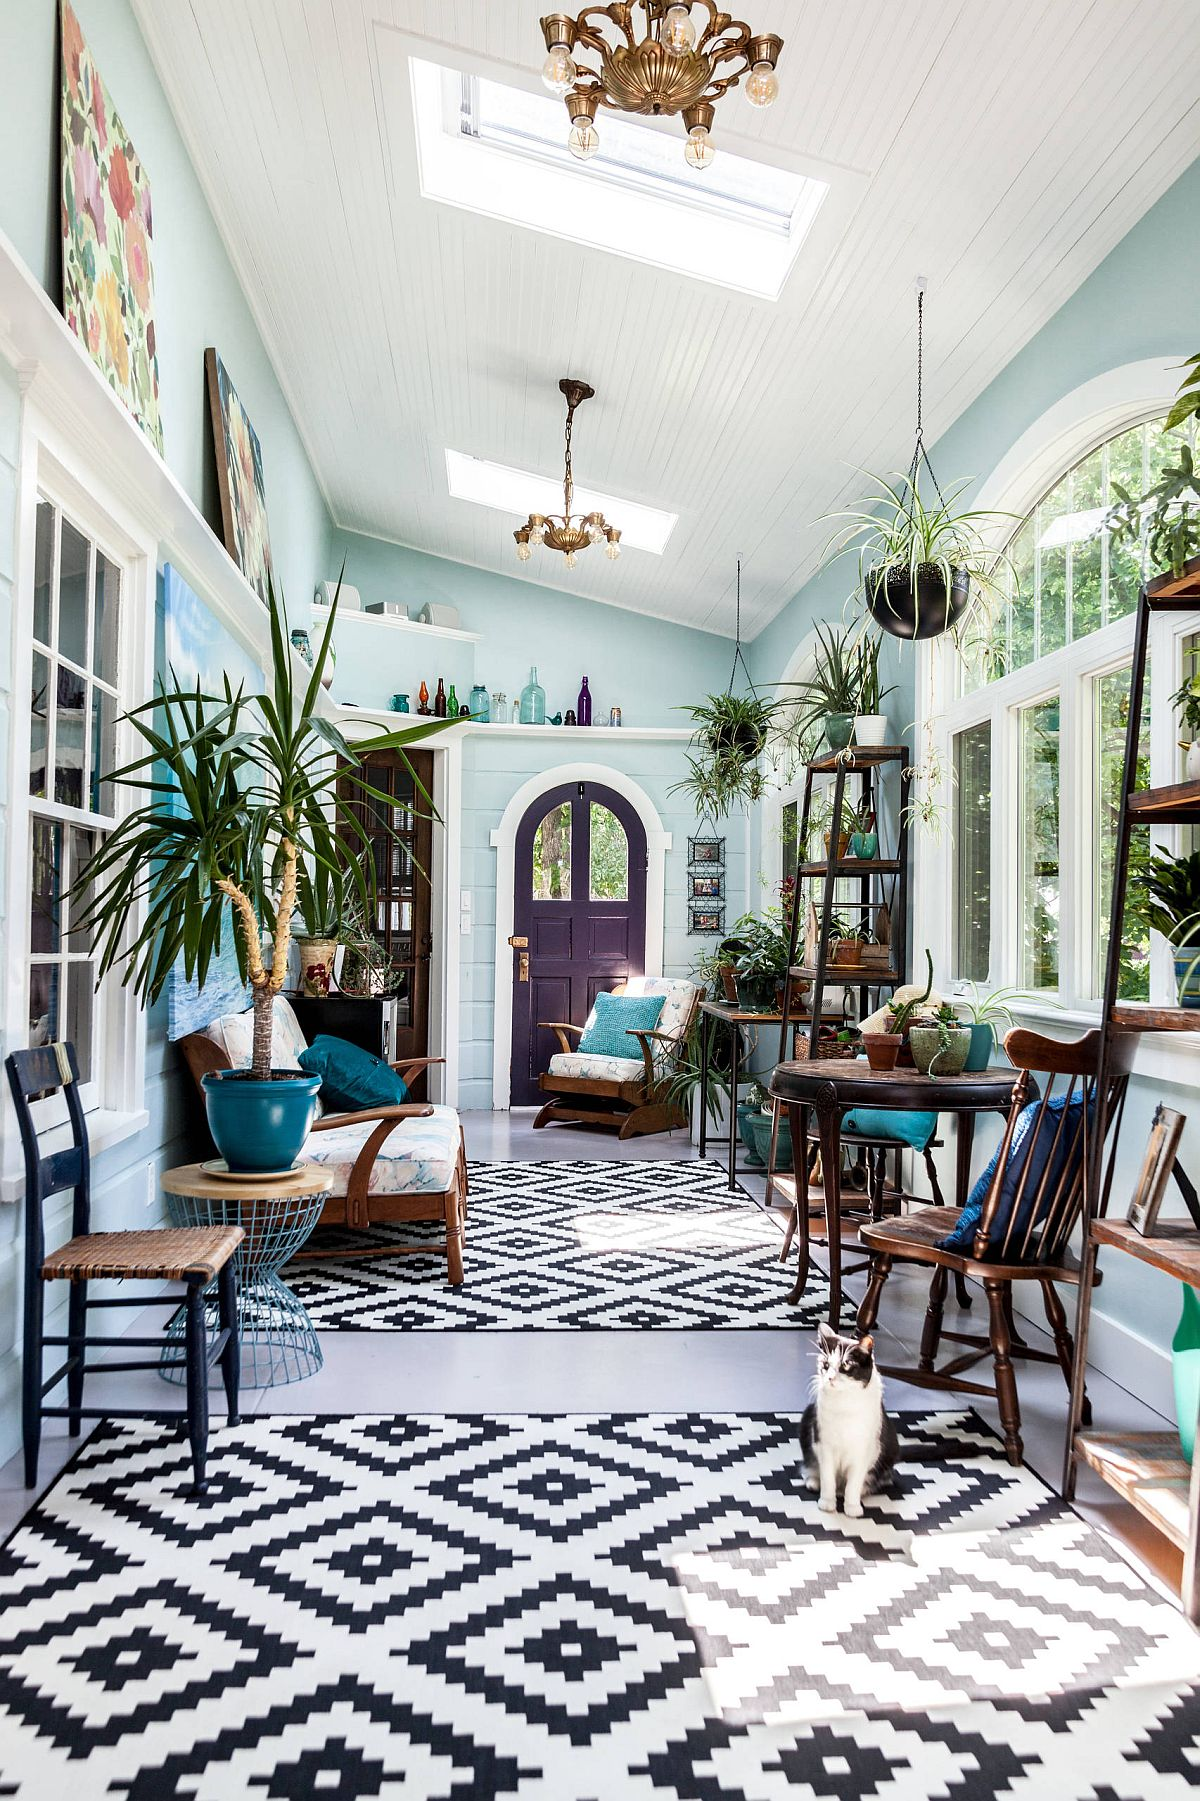 Light blue, white and black and white rugs combined to create a fabulous sunroom with eclectic flair